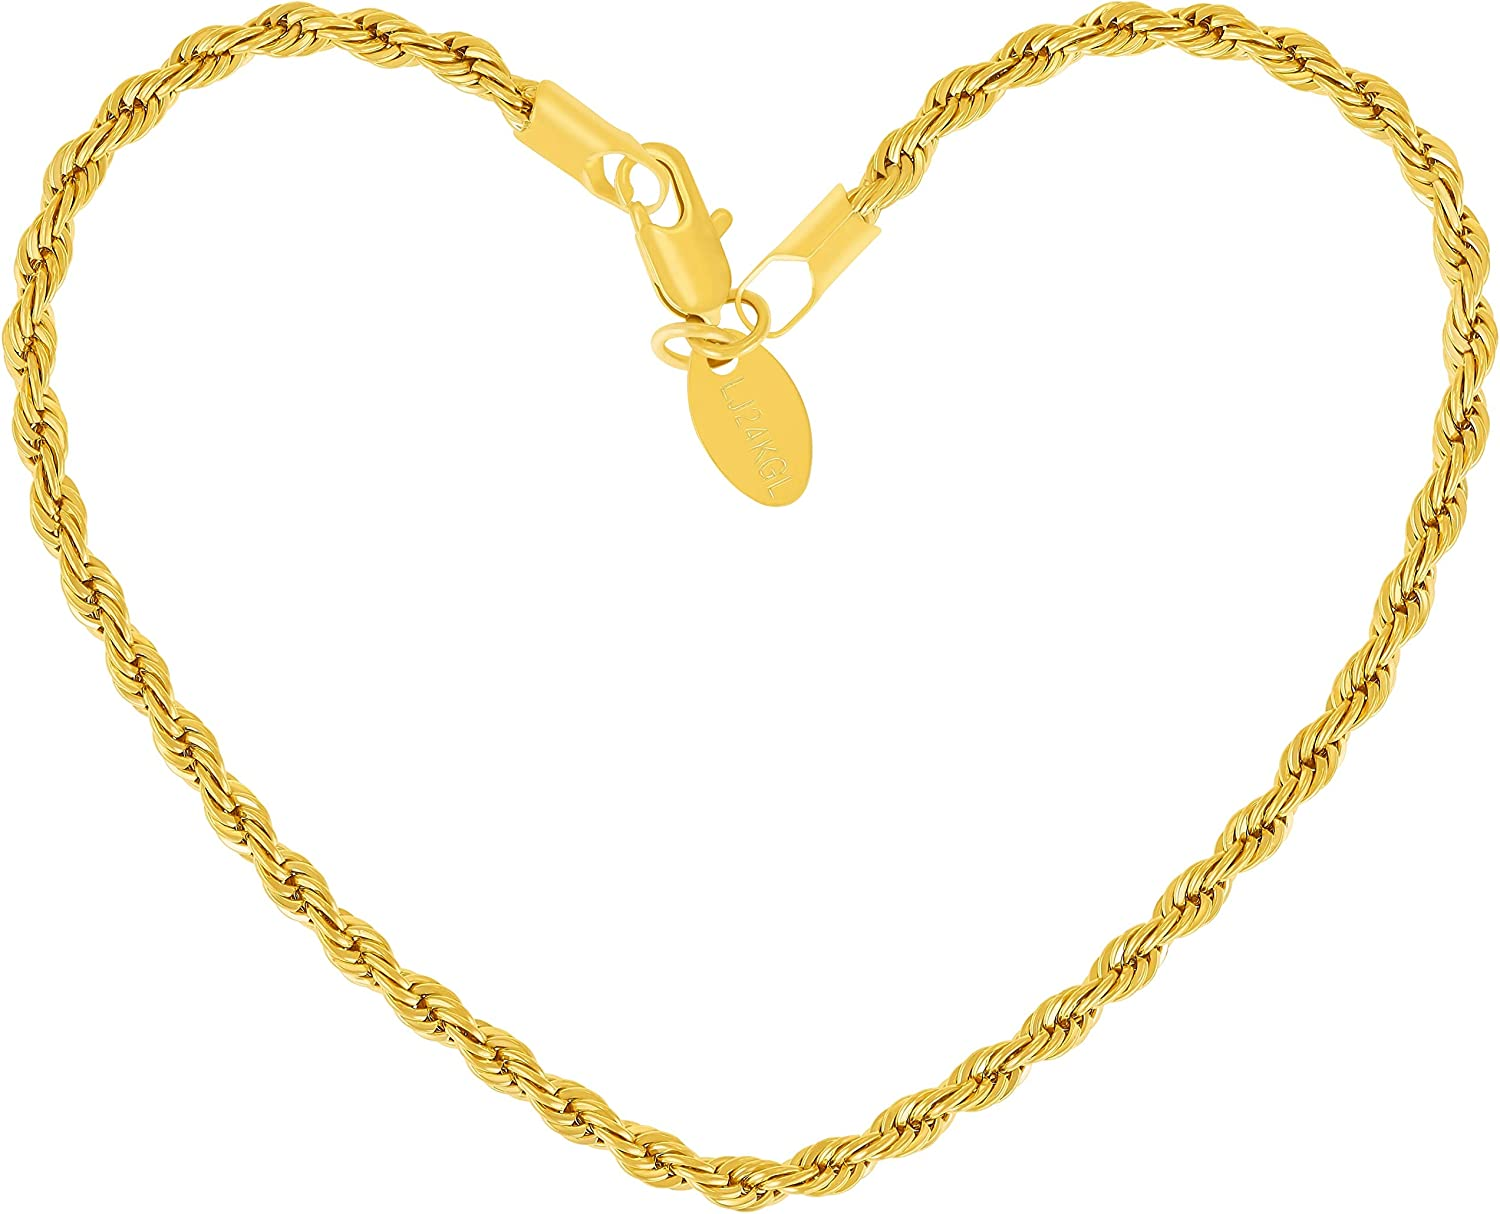 LIFETIME JEWELRY 3mm Rope Oklahoma Austin Mall City Mall Chain Bracelet fo Real Plated 24k Gold